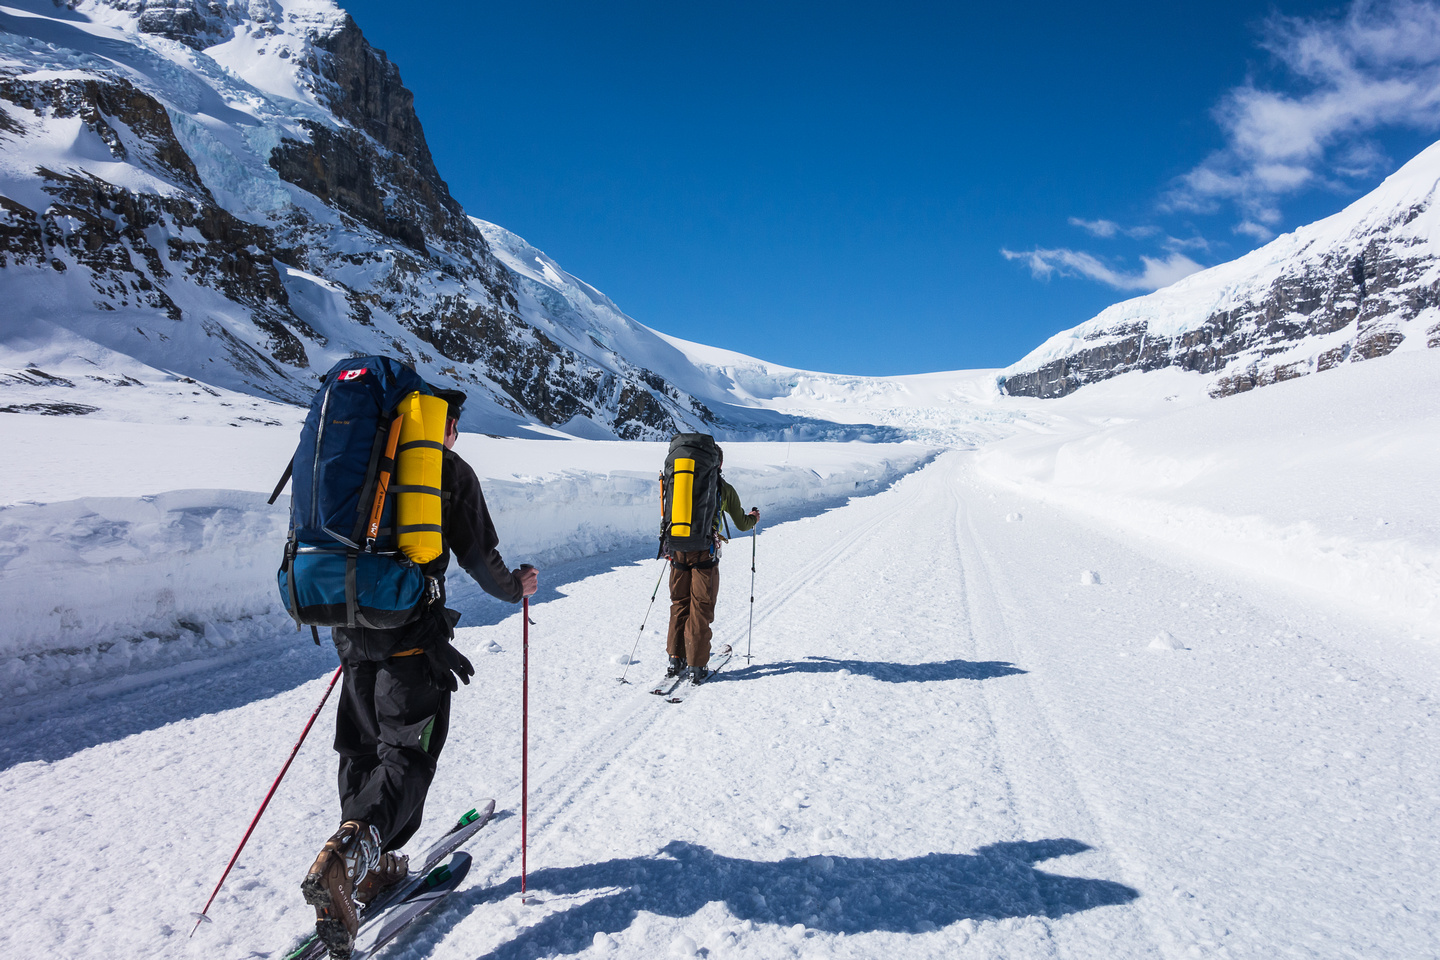 Skinning up the snow coach road on the Athabasca Glacier.